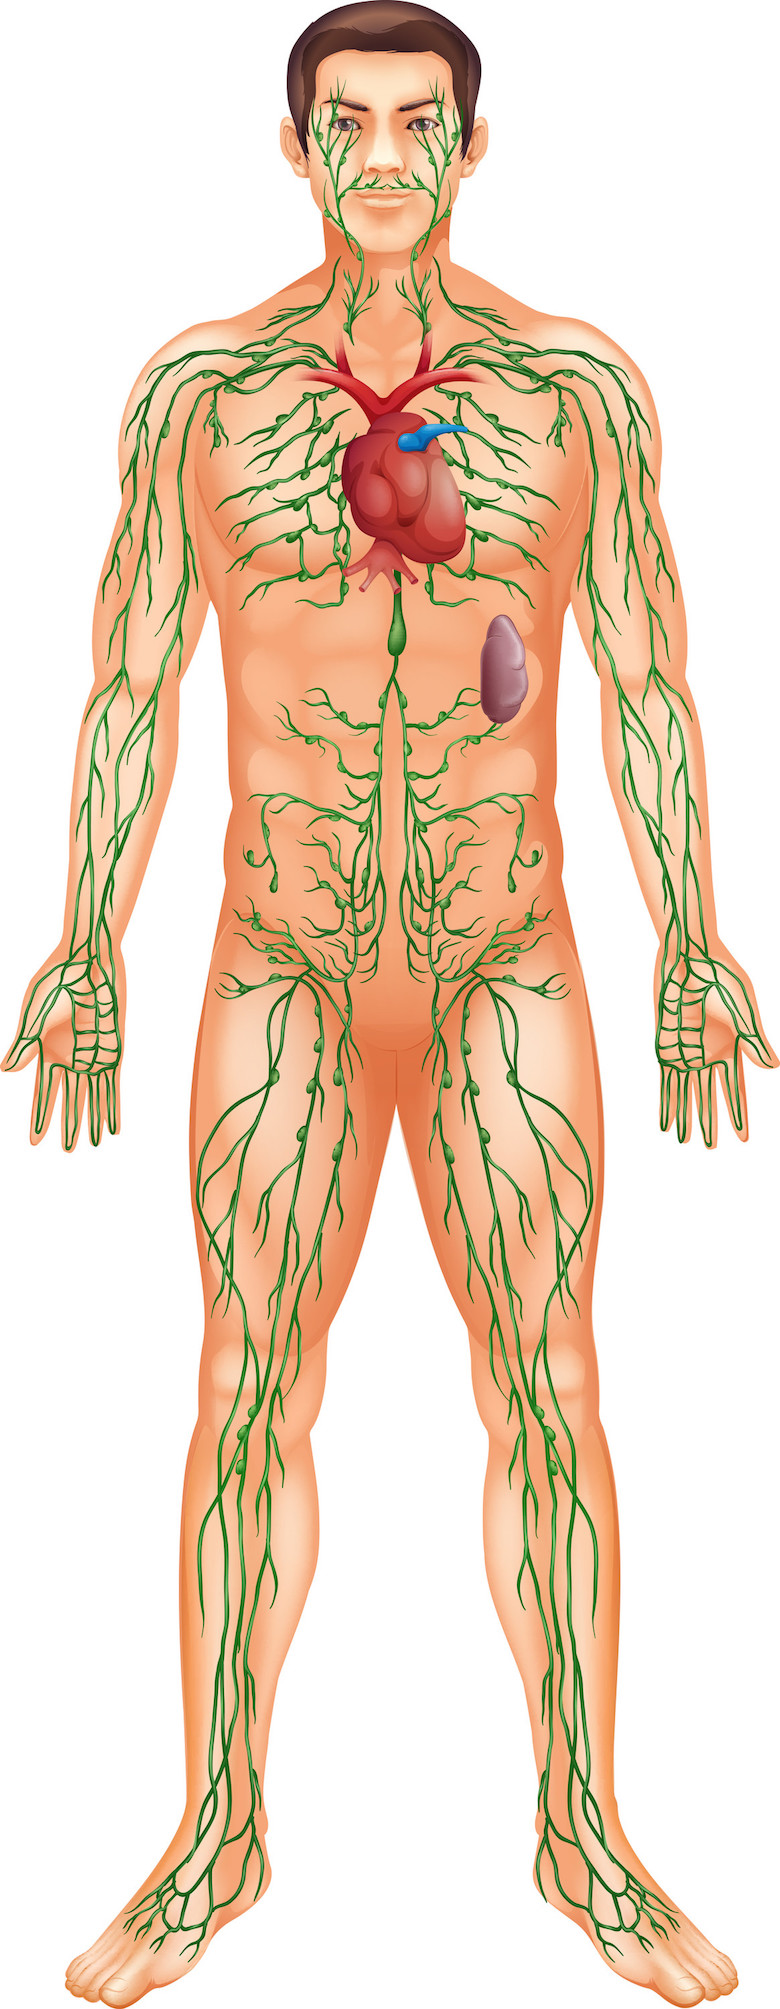 lymphatic system with the heart